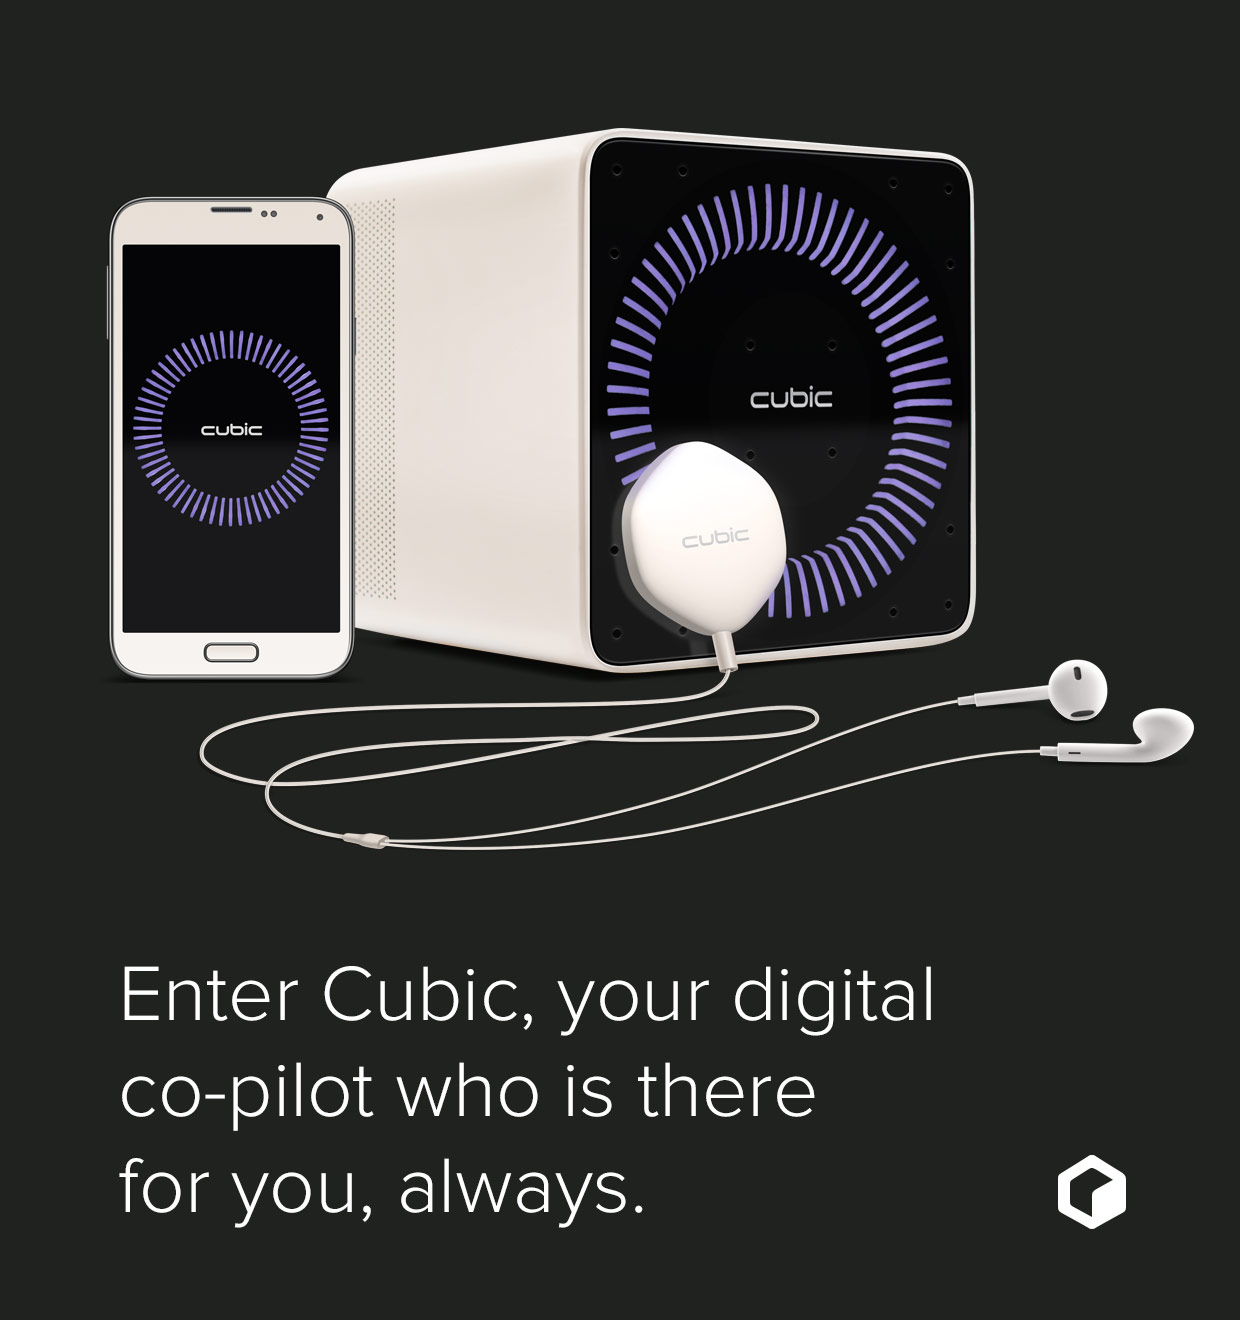 Cubic: Your Personal AI with Personality | Indiegogo